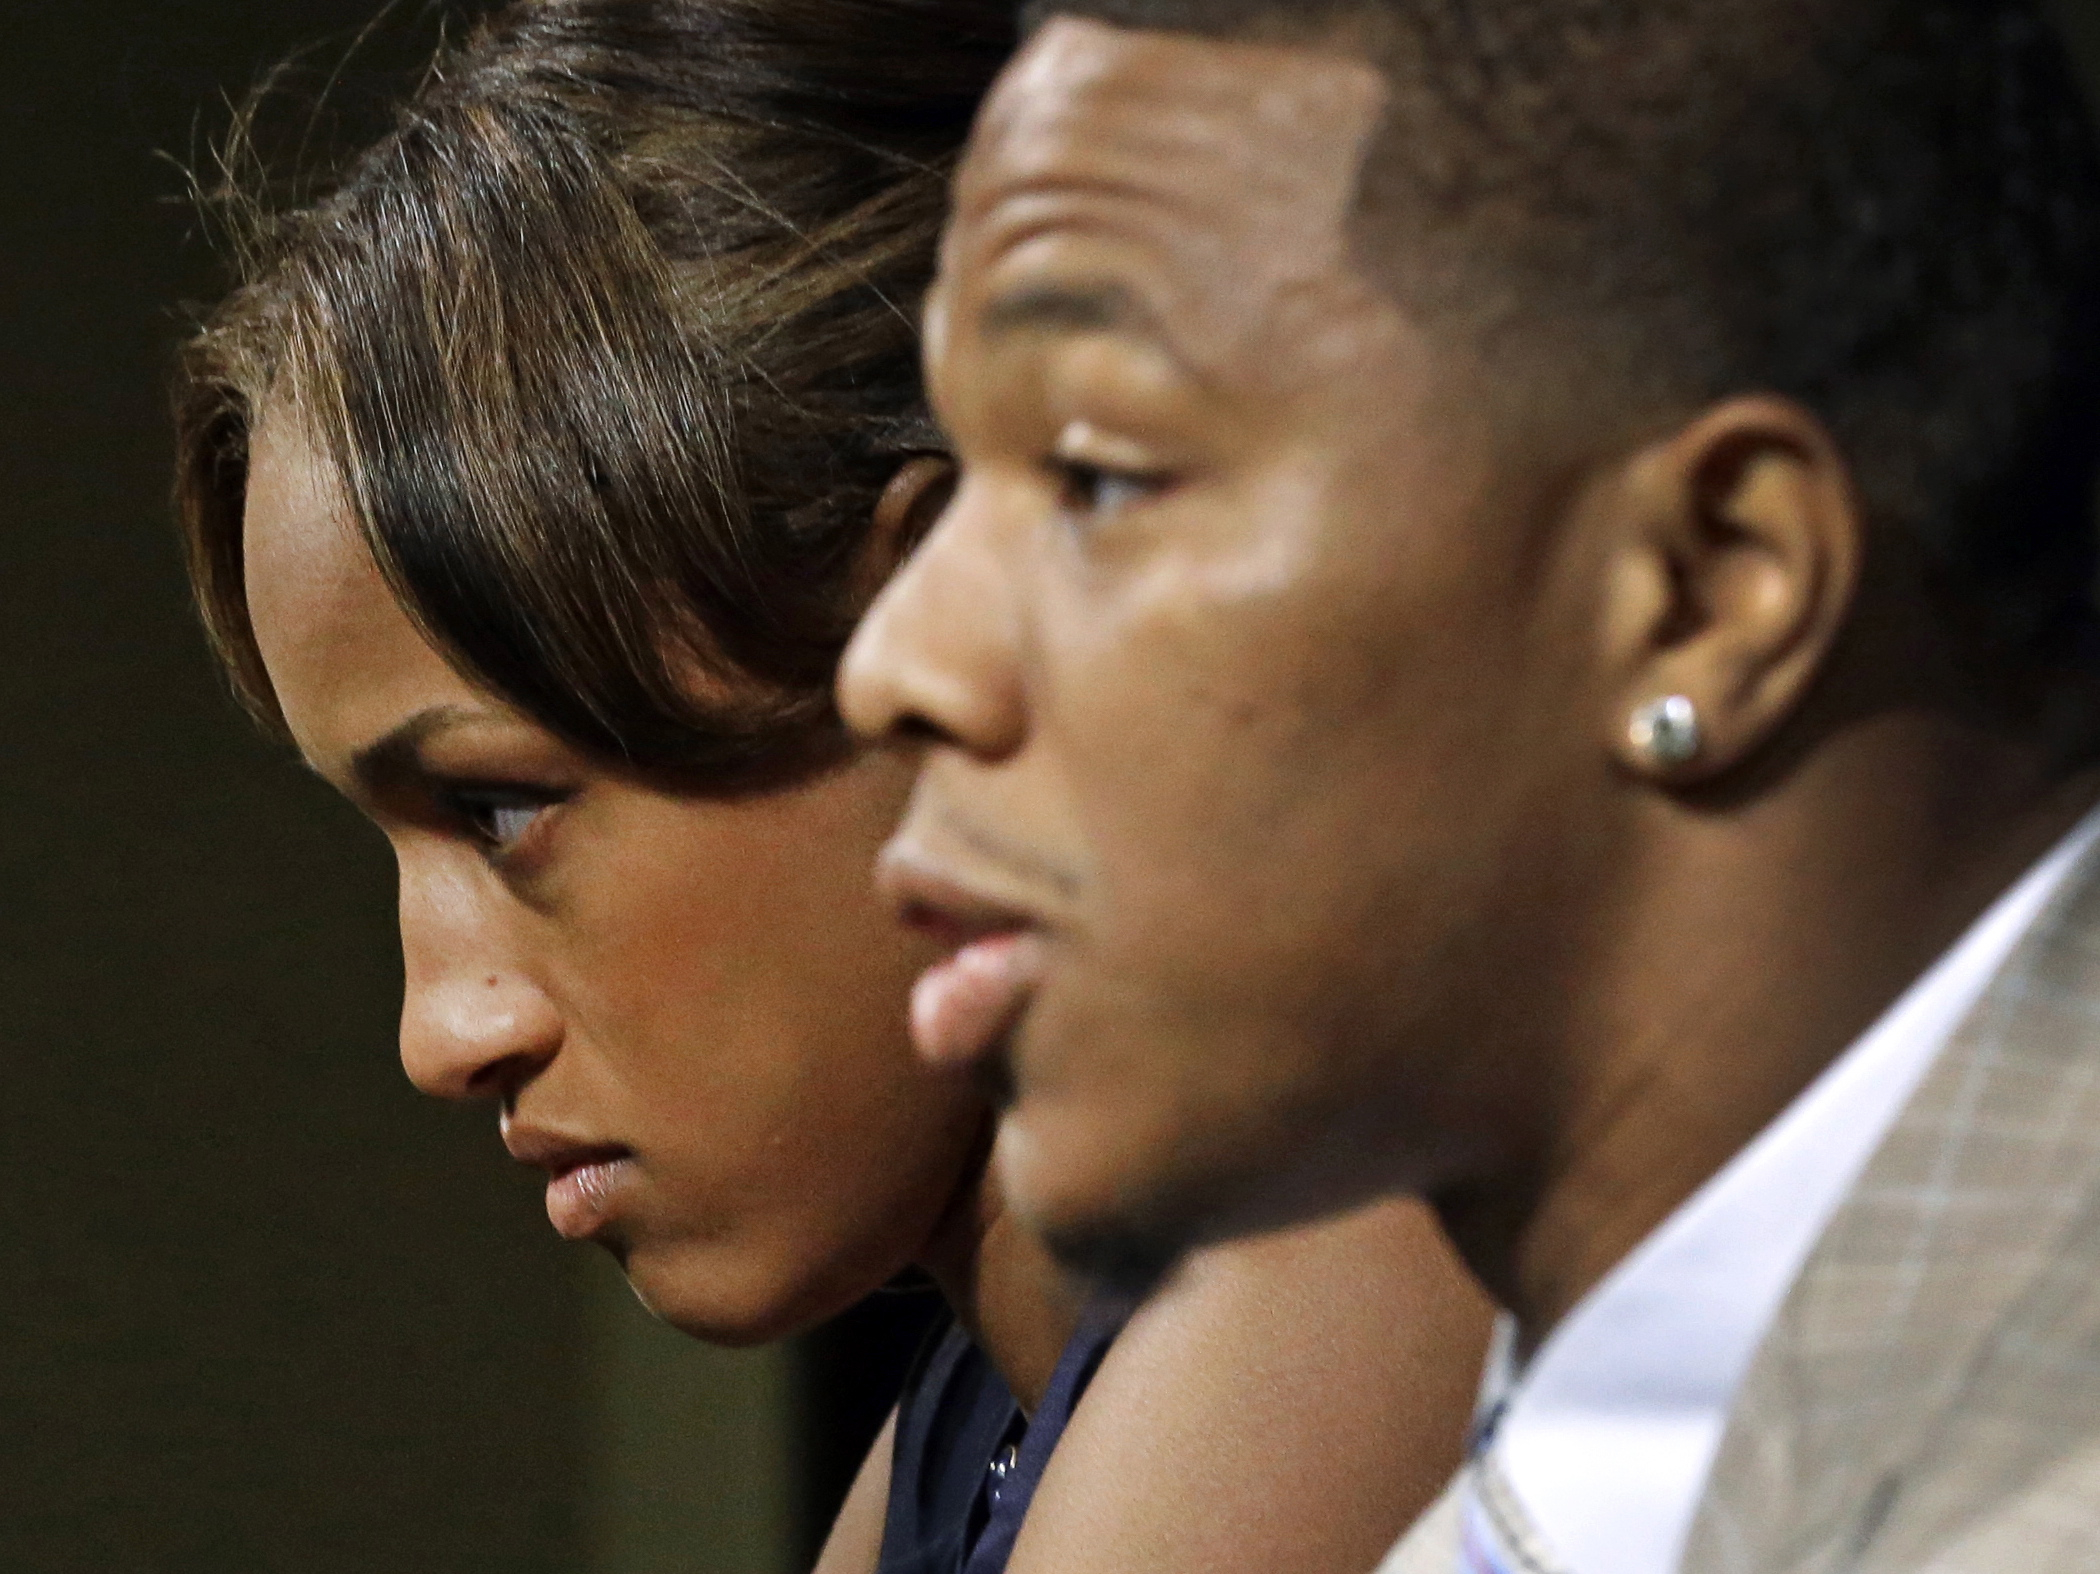 The Rate of Domestic Violence Arrests Among NFL Players